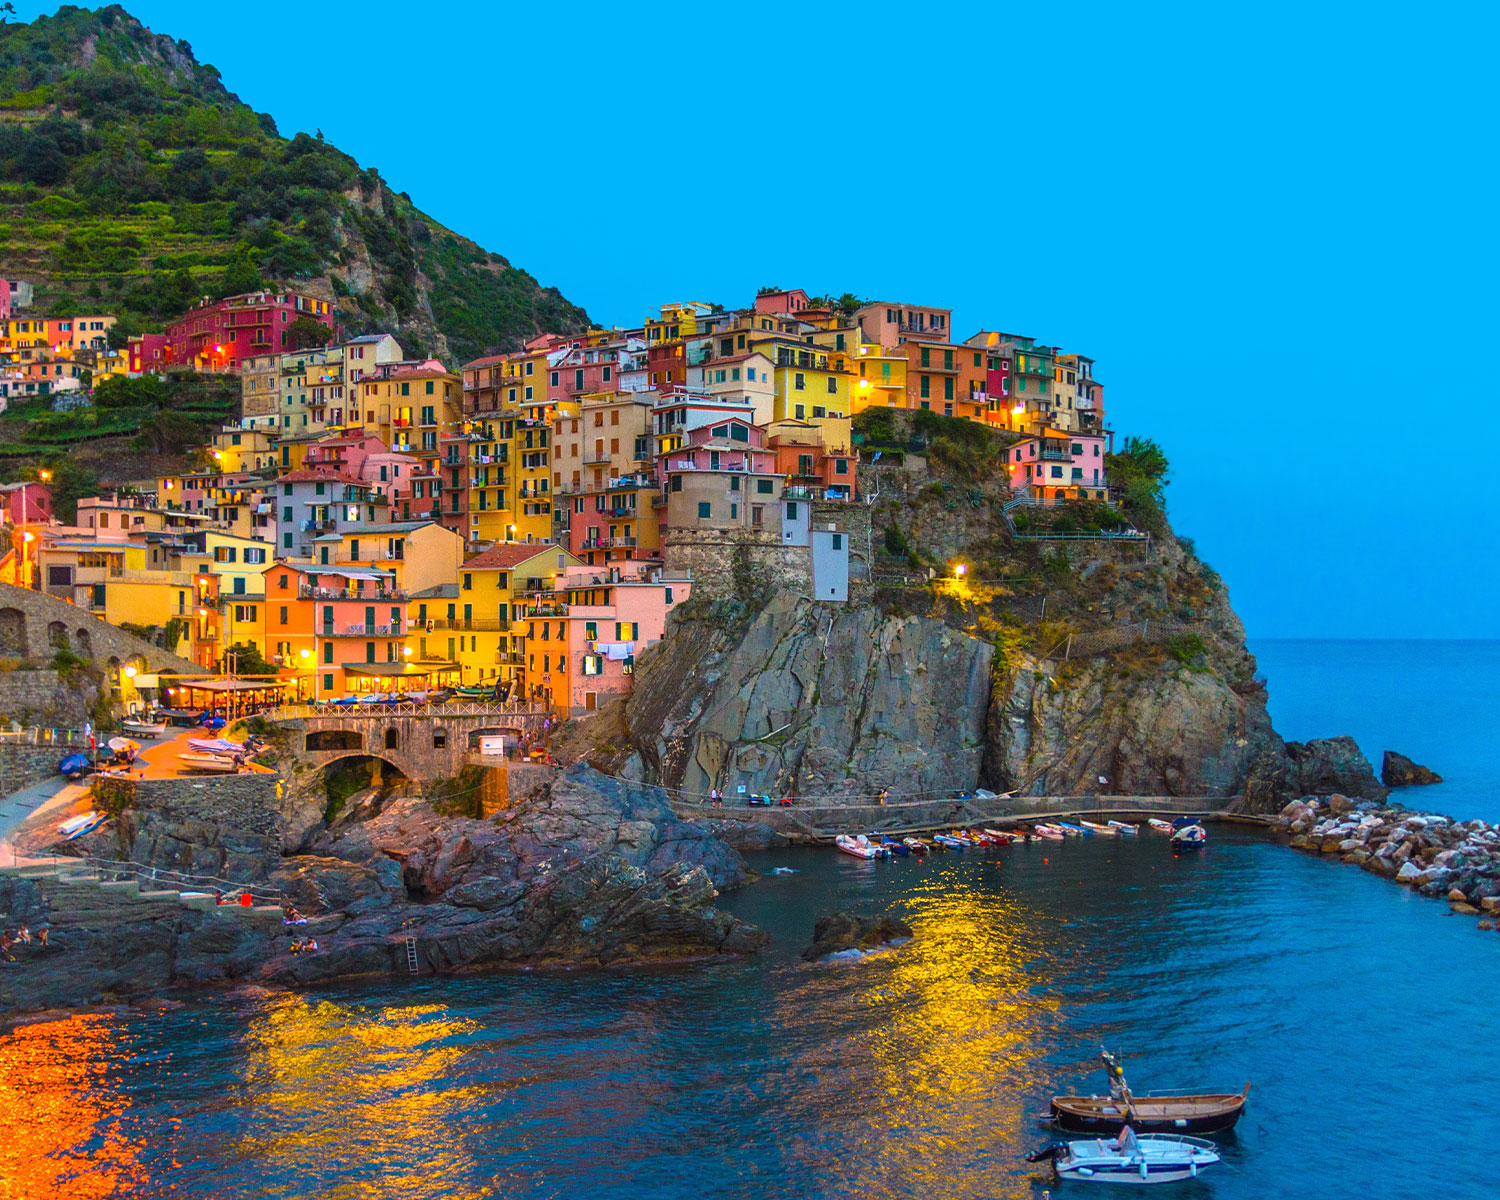 Manarola traditional typical Italian village in National park Cinque Terre with colourful multi-coloured buildings houses on rock cliff and marine harbour, night evening view – international payments for buying or selling a property abroad. RationalFX can help you save money on your overseas transfers when you make a payment purchasing home abroad.